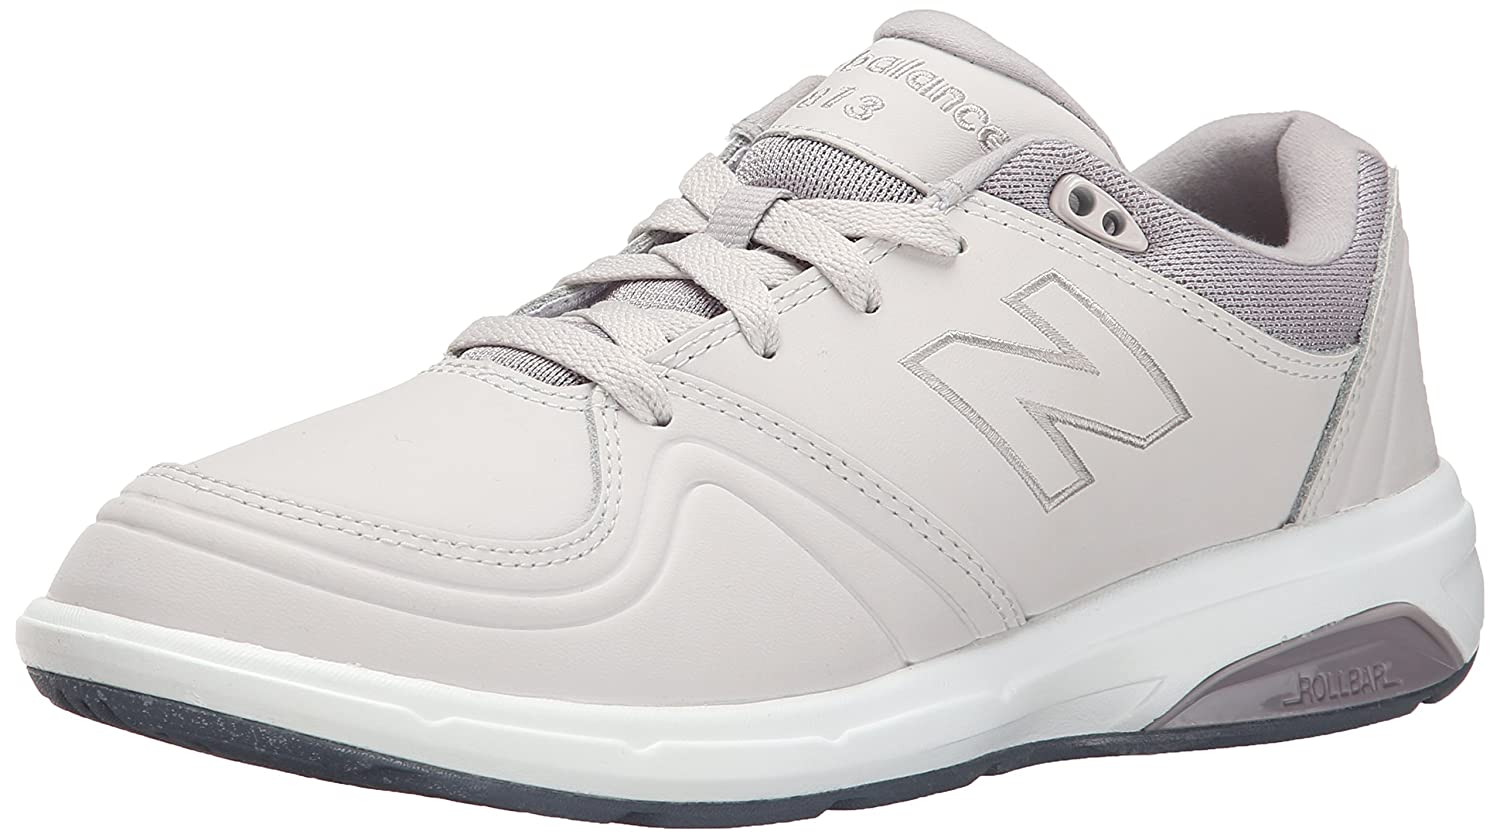 New Balance Women's WW813 Walking Shoe B00R7912TA 7 B(M) US|Grey